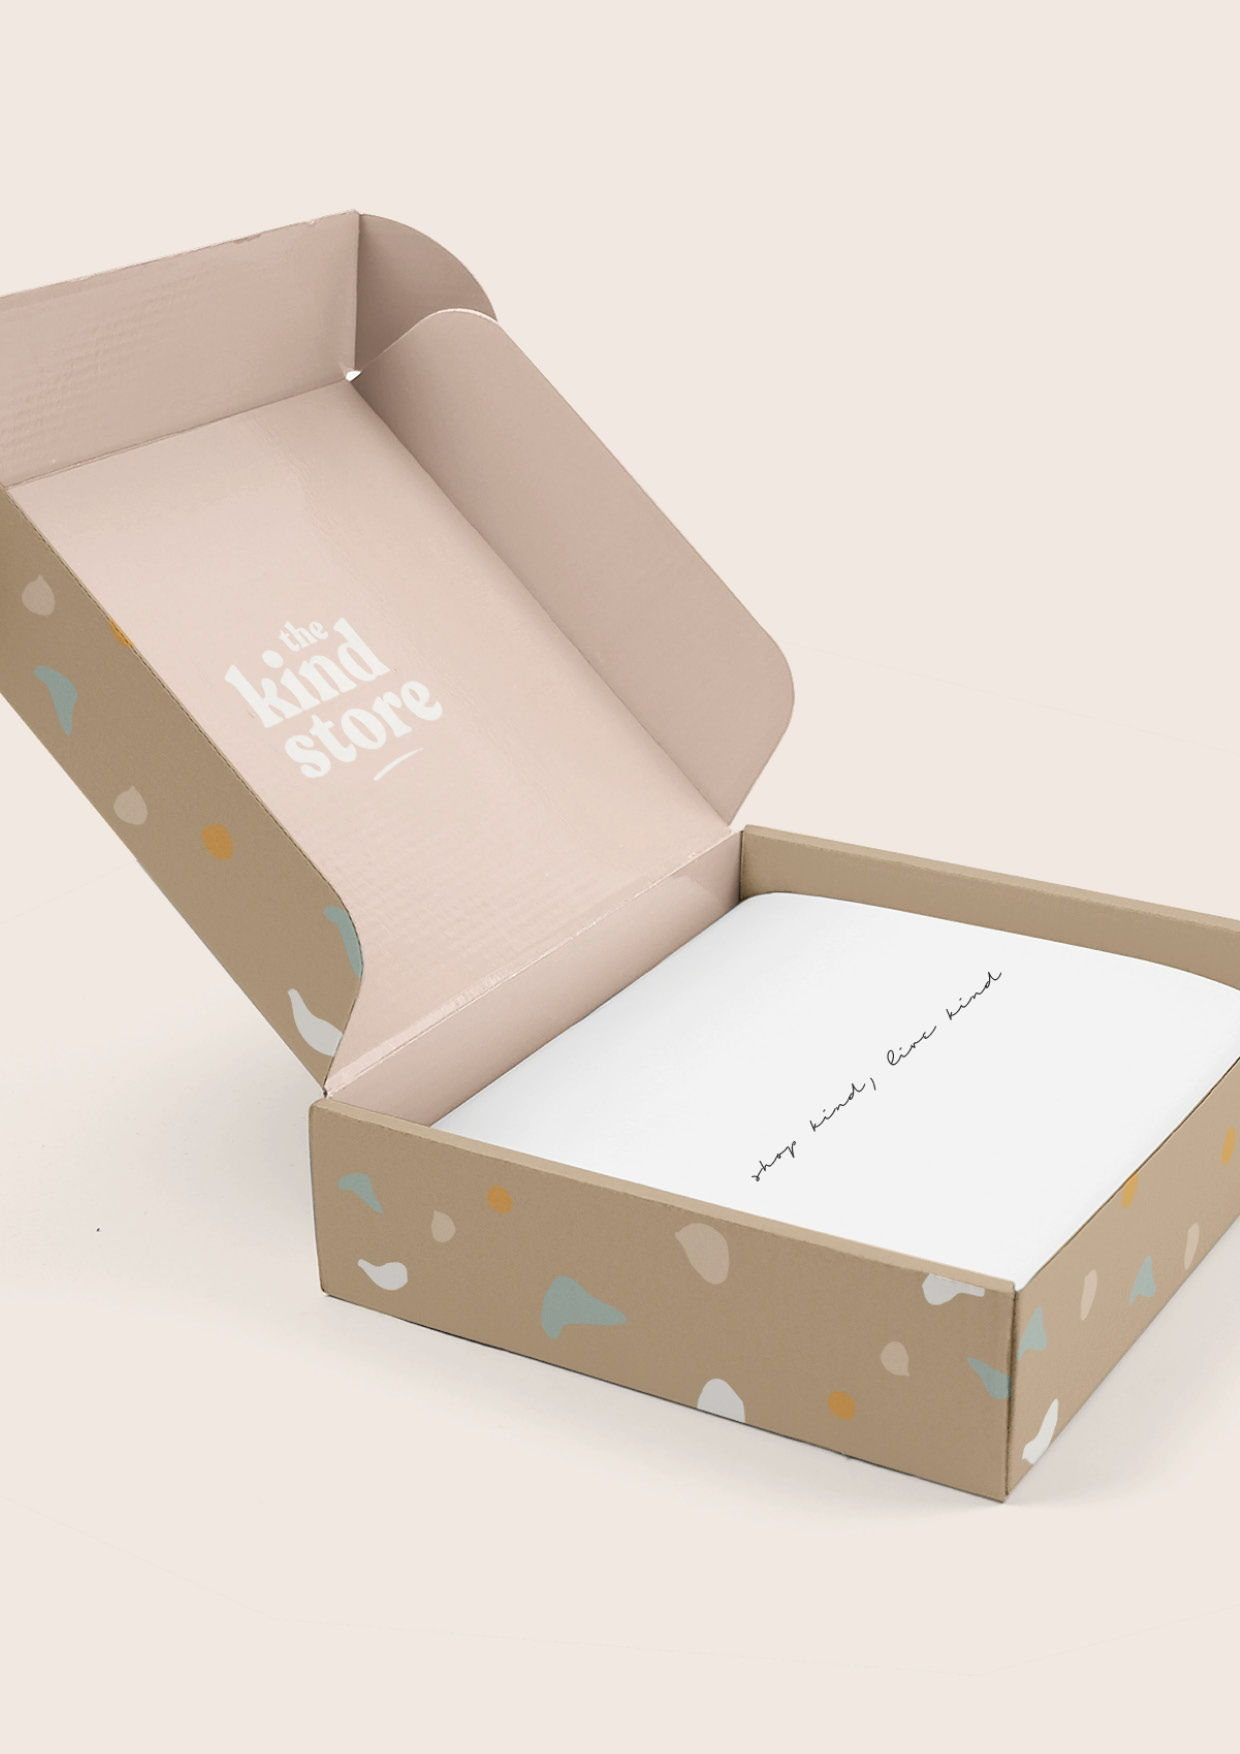 Recycled sustainable box packaging design for The Kind Store a zero waste vegan beauty online store. Eco-friendly ethical packaging design.  #ethical #ecofriendly #packaging #inspiration #design #sustainable #branding #brandstylist #designinspo #brandinspiration